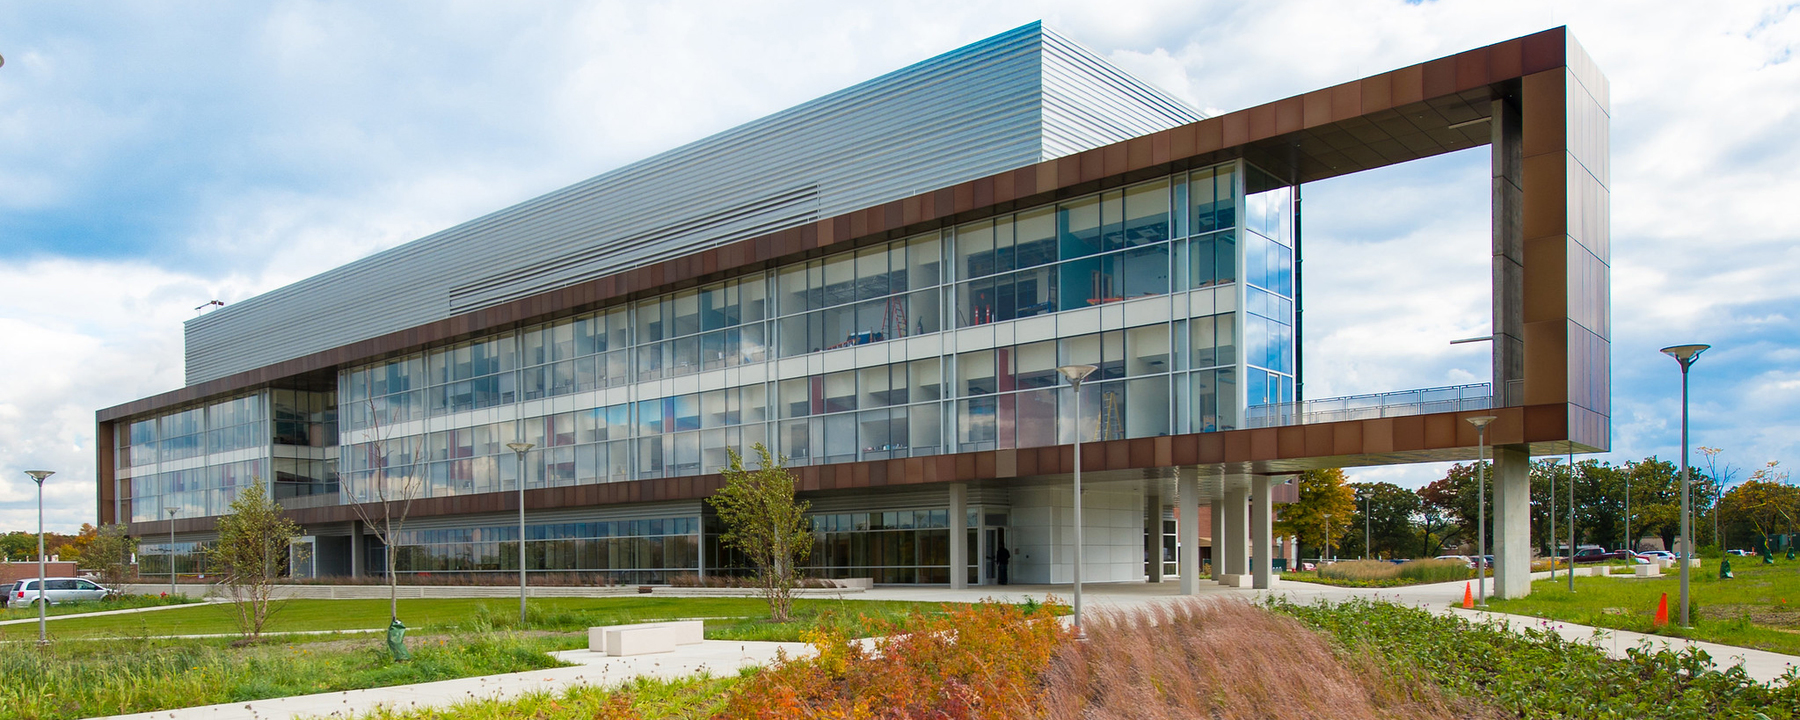 Argonne Energy Sciences Building